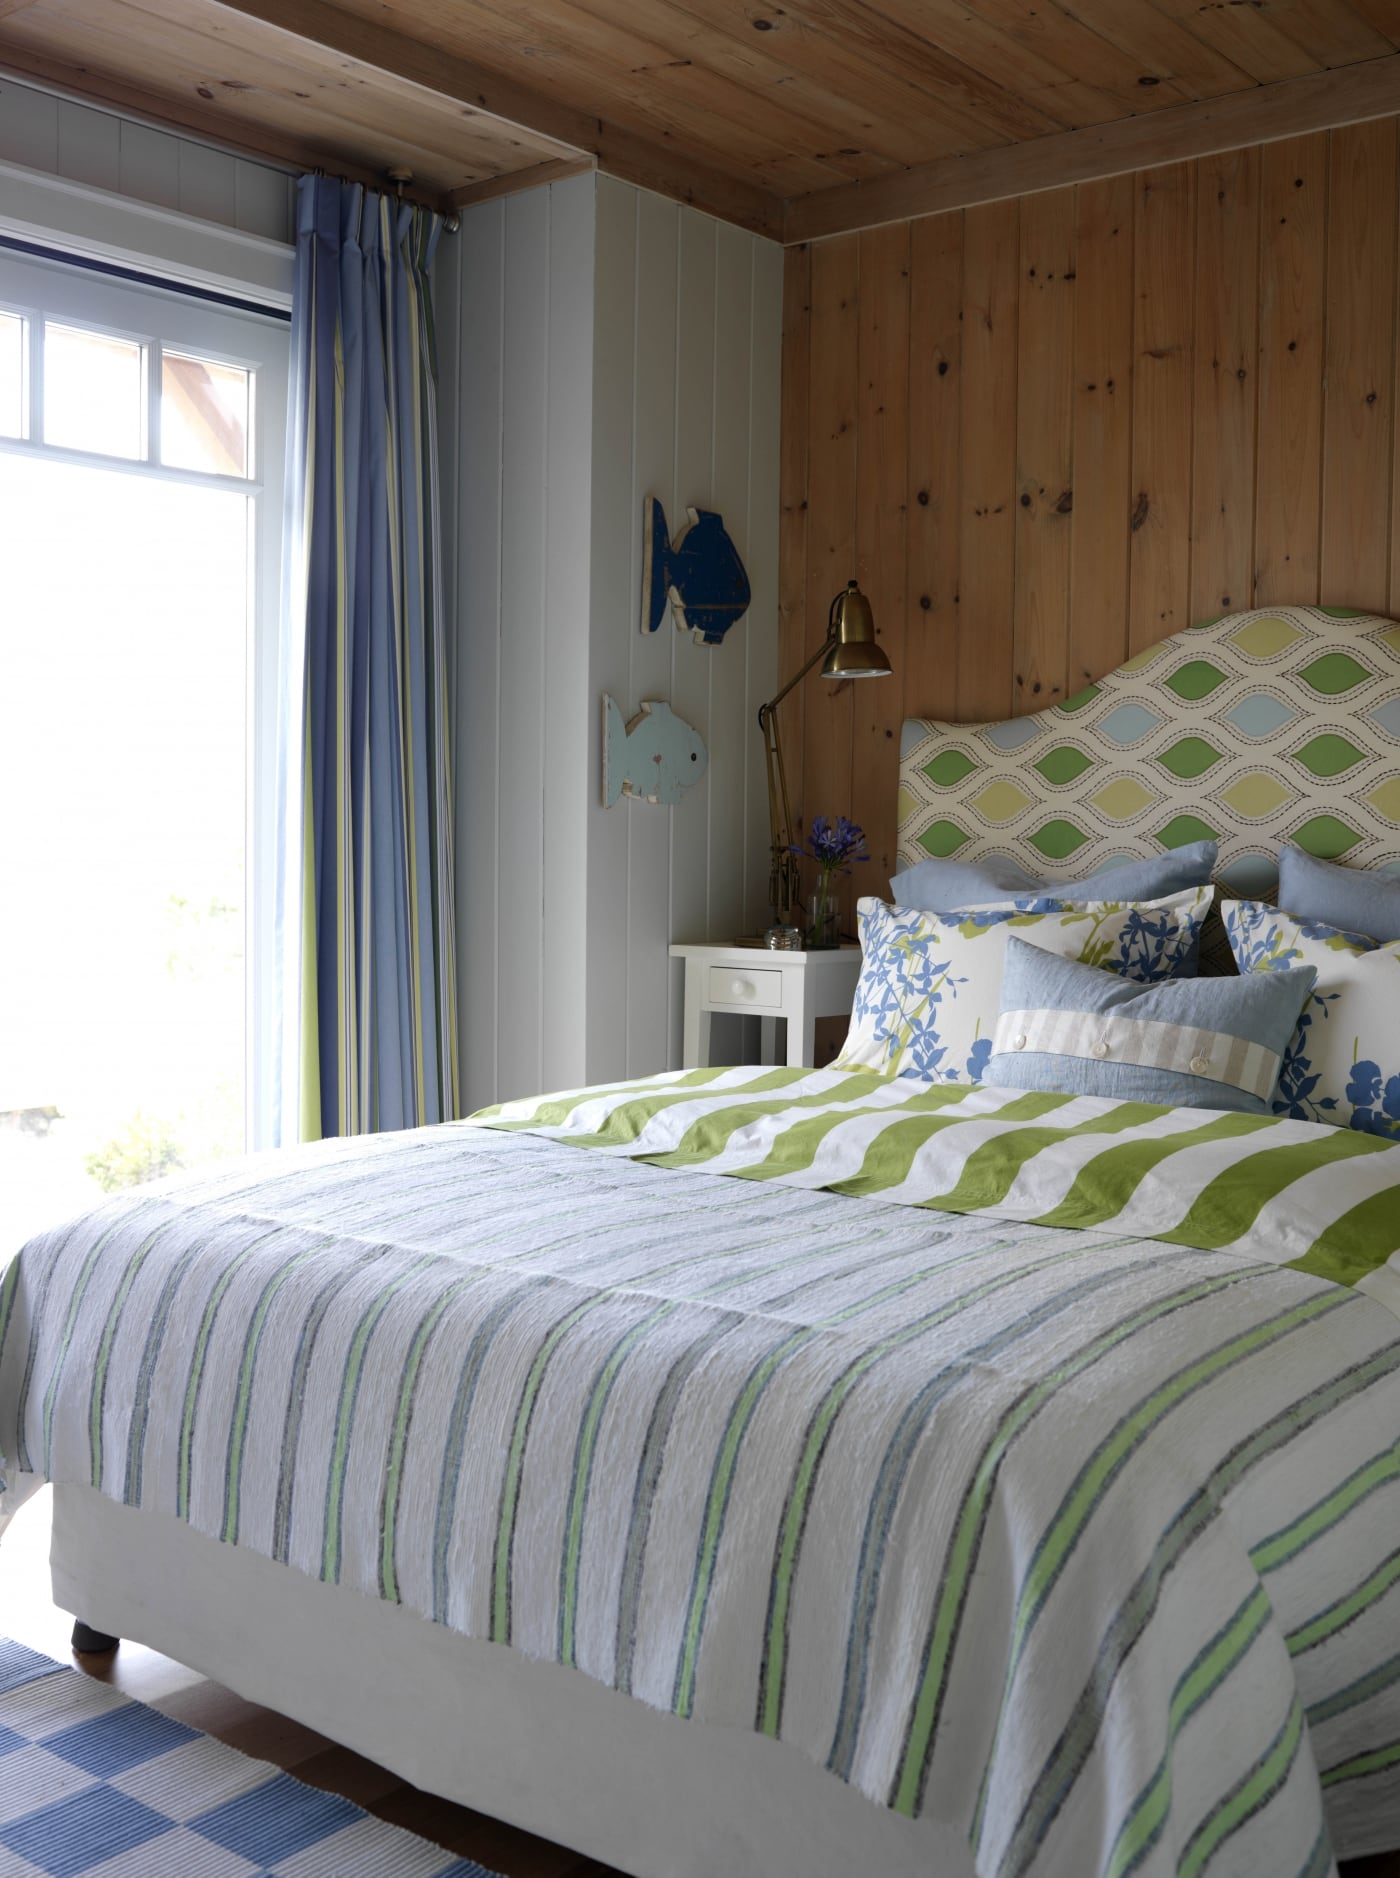 Bed with green headboard beside a window with knotty pine paneling. #SarahRichardson #cottagestyle